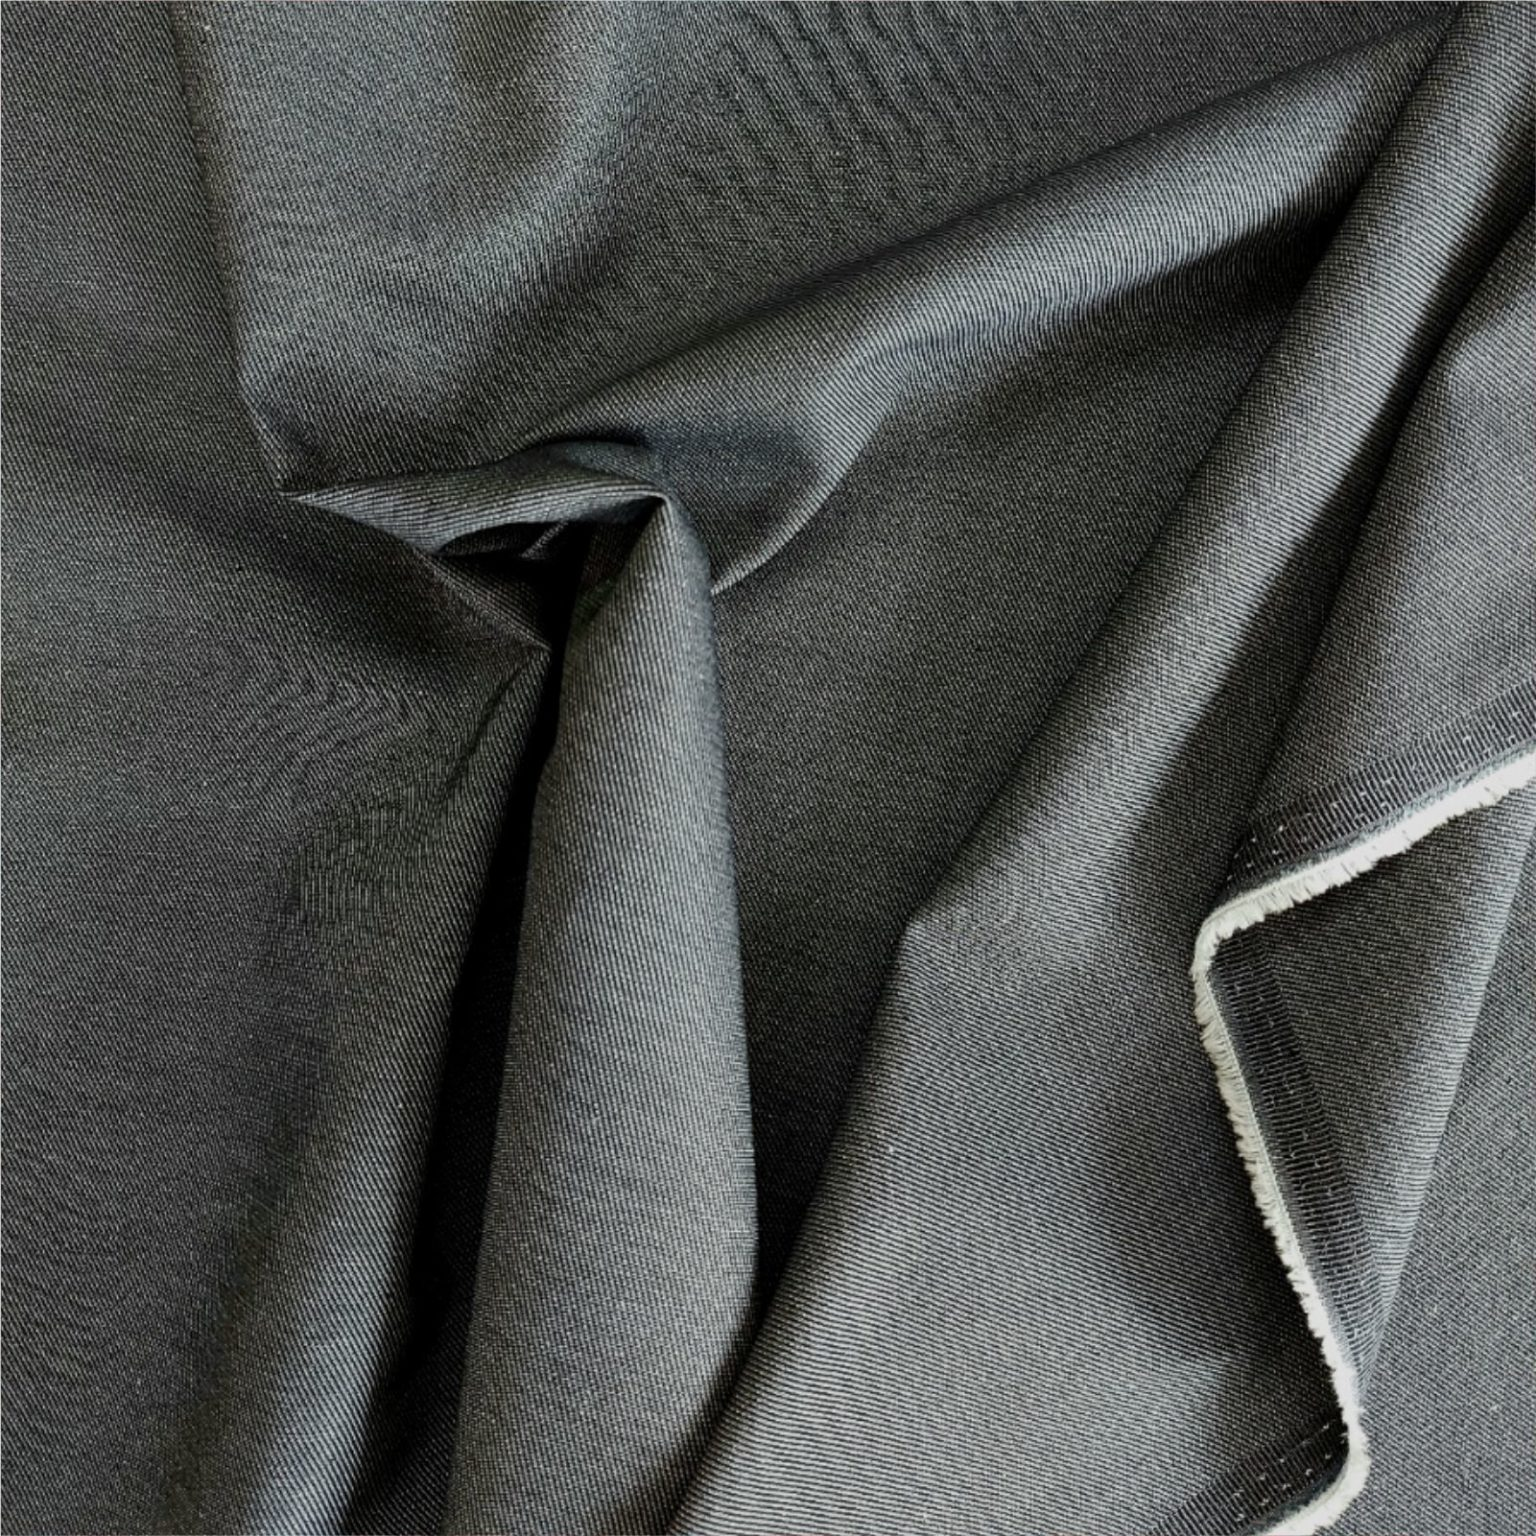 Grey Twill Weave 'Chambray' Type | More Sewing